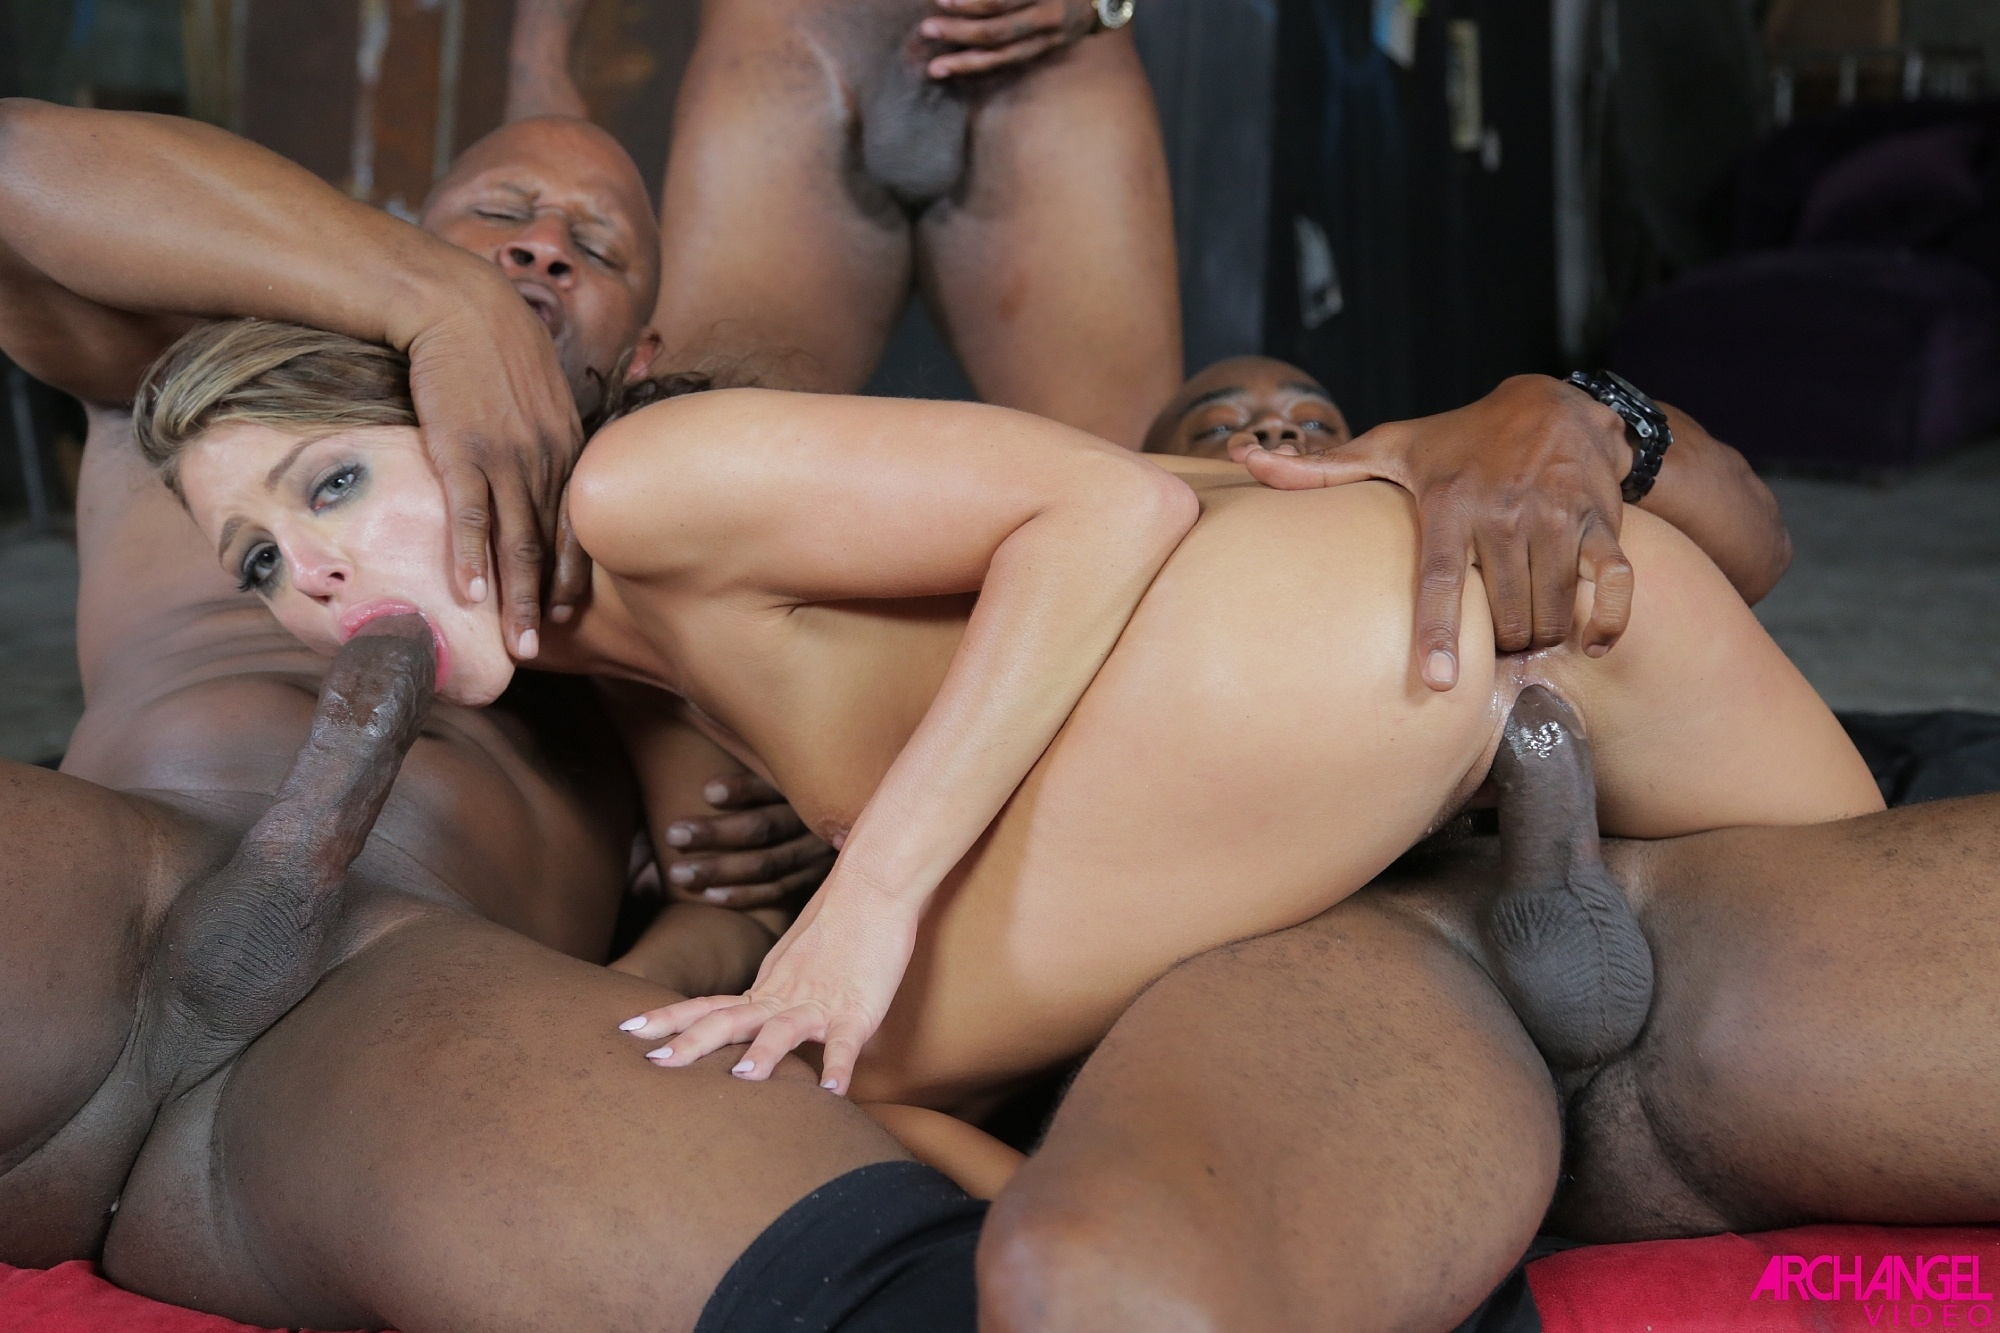 Adriana fucks black guys 3